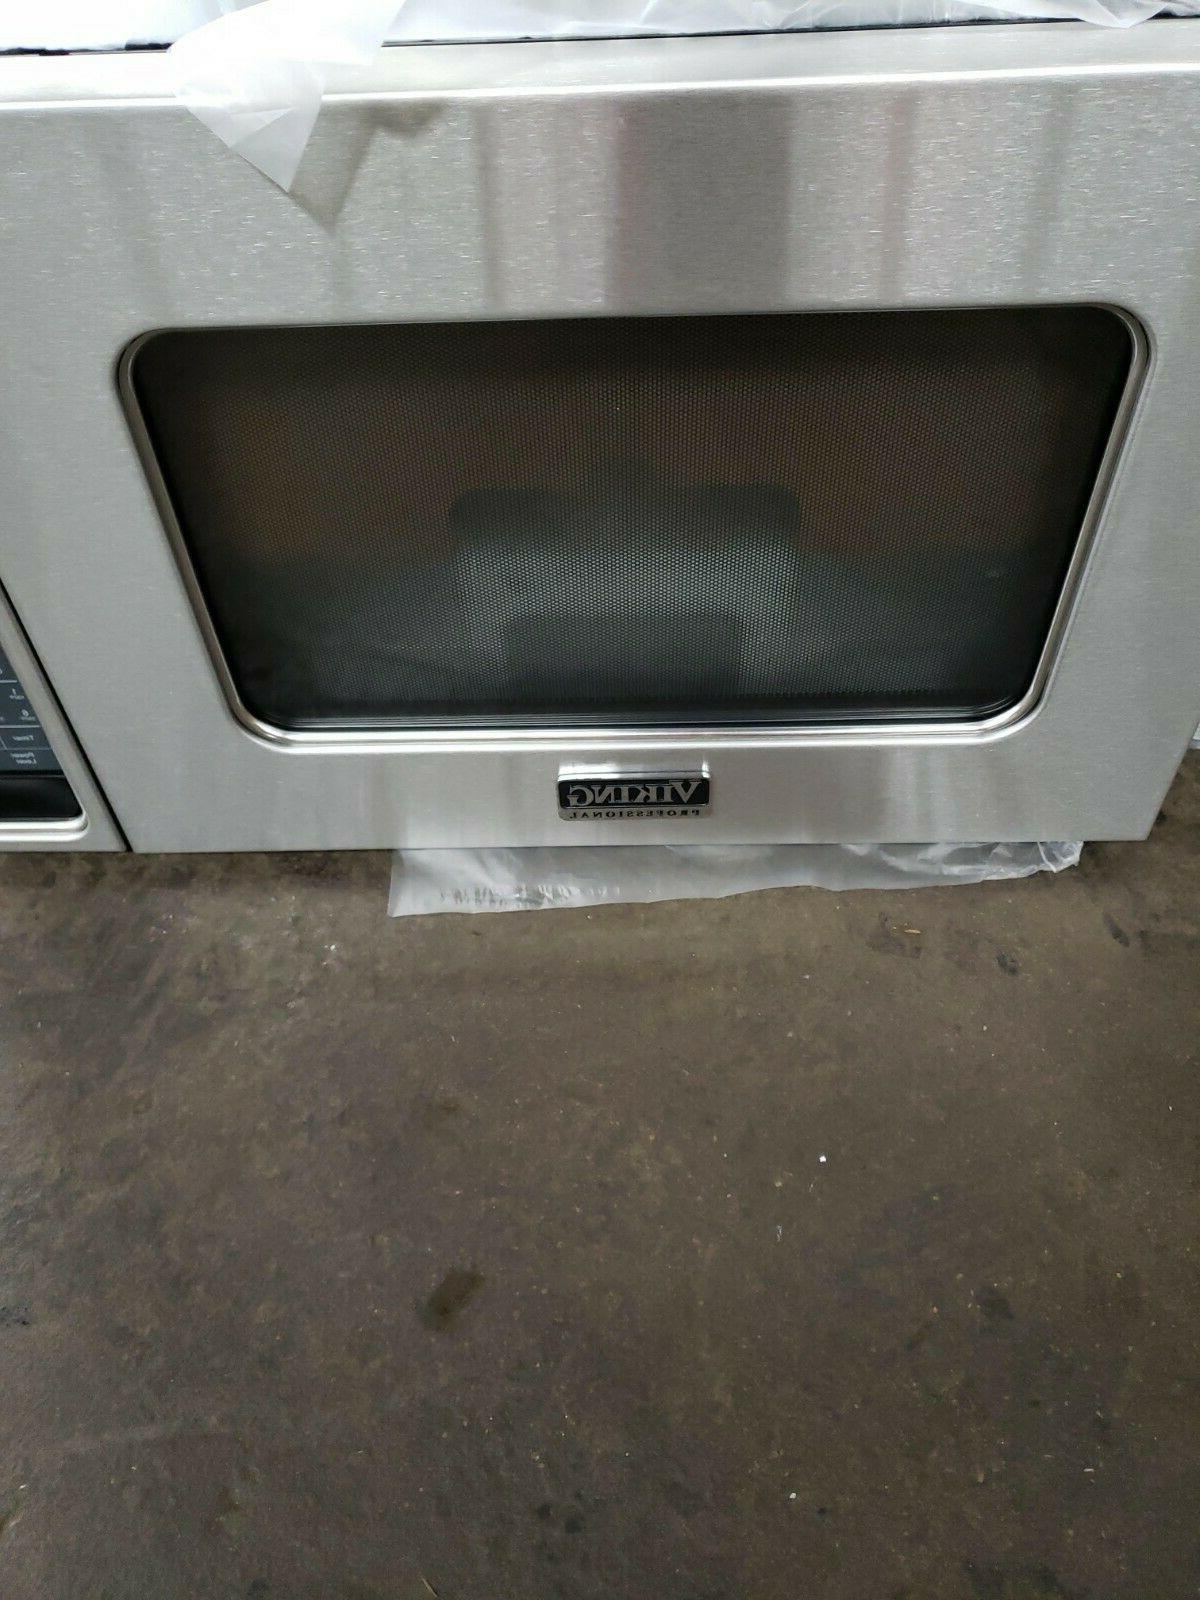 Brand Professional Series Convection Microwave w/Trim Kit